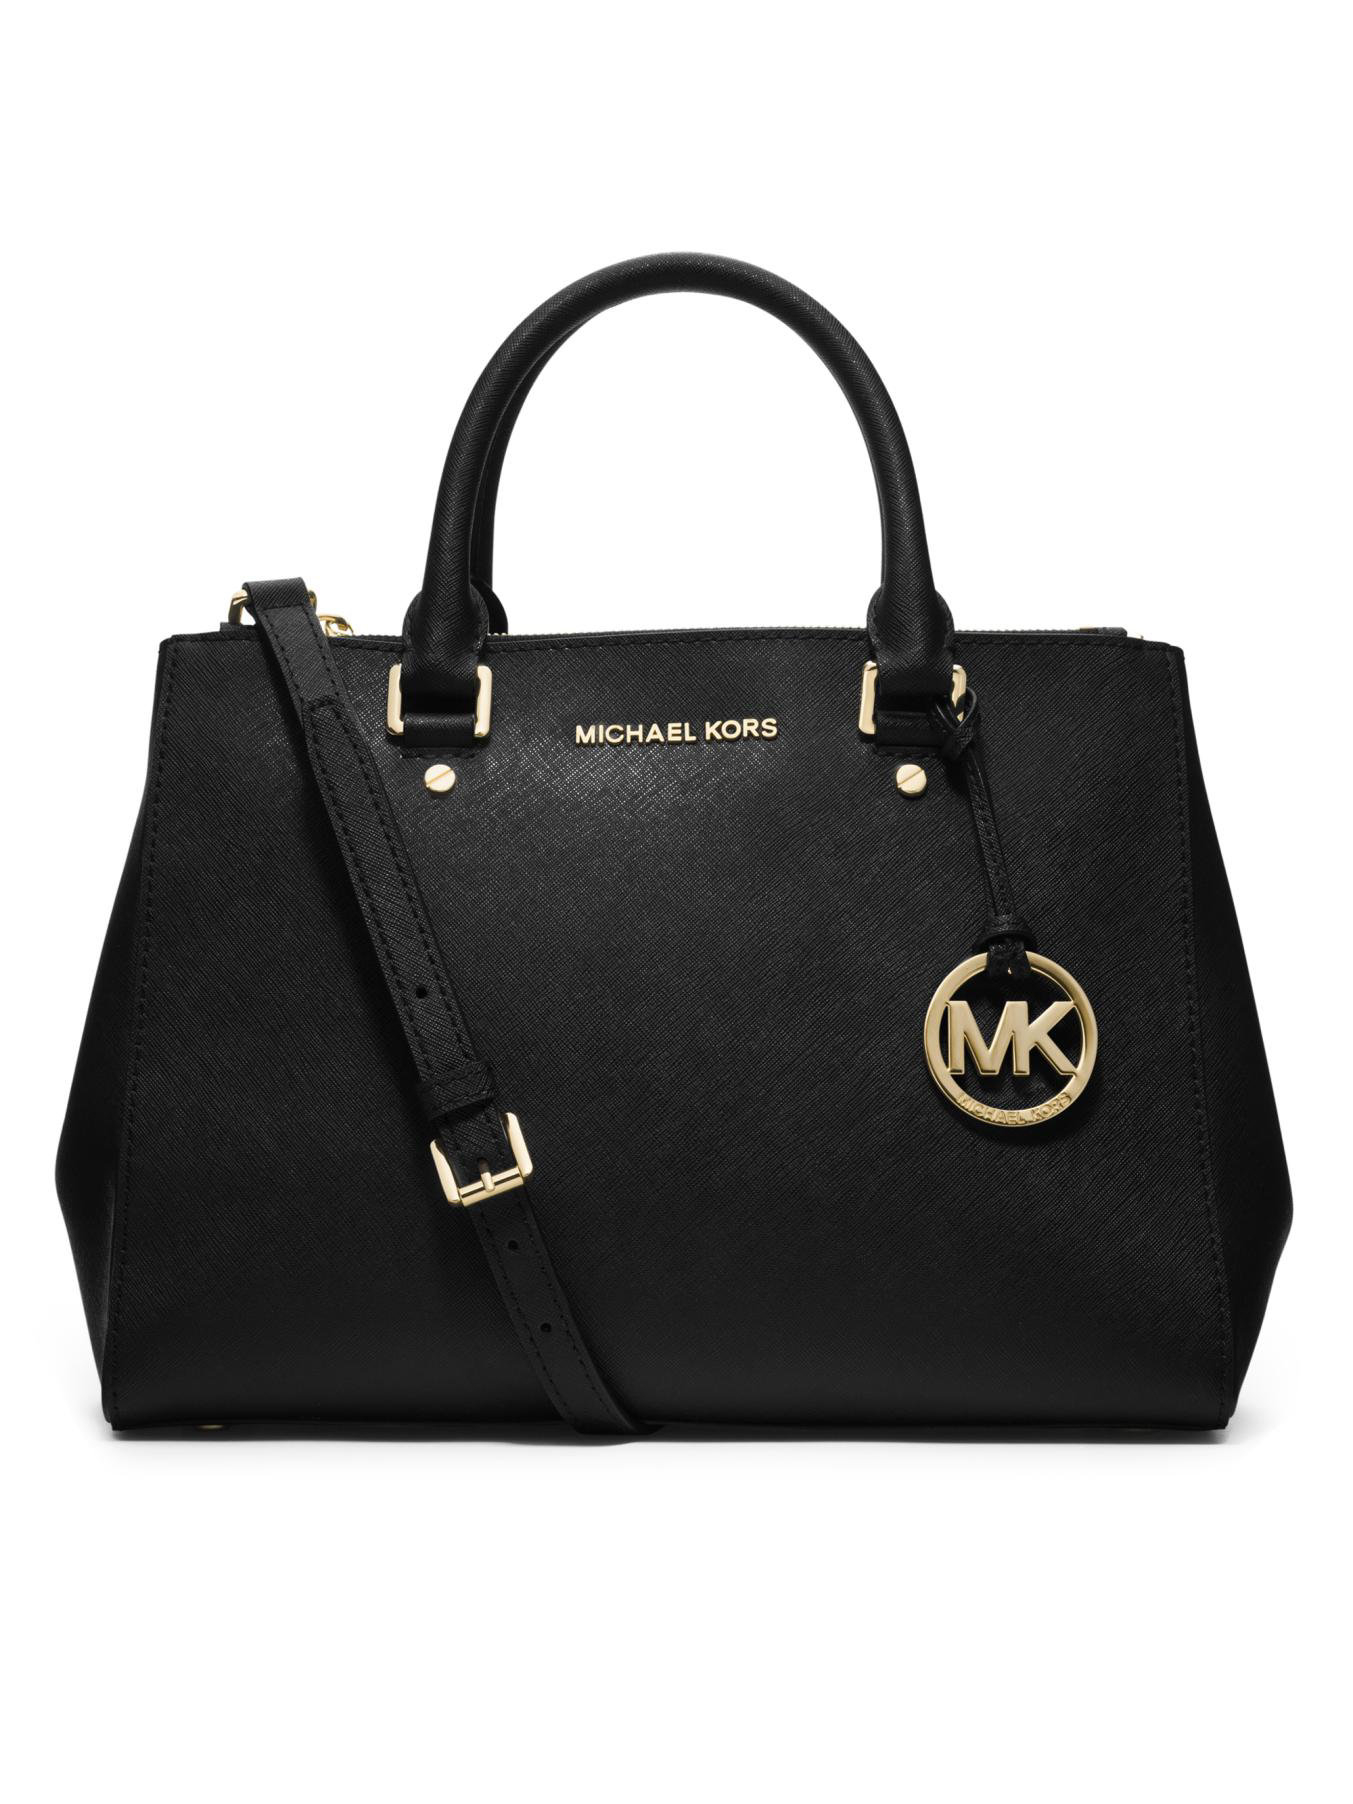 View and shop all designer handbags, purses, backpacks & luggage on the official Michael Kors site.